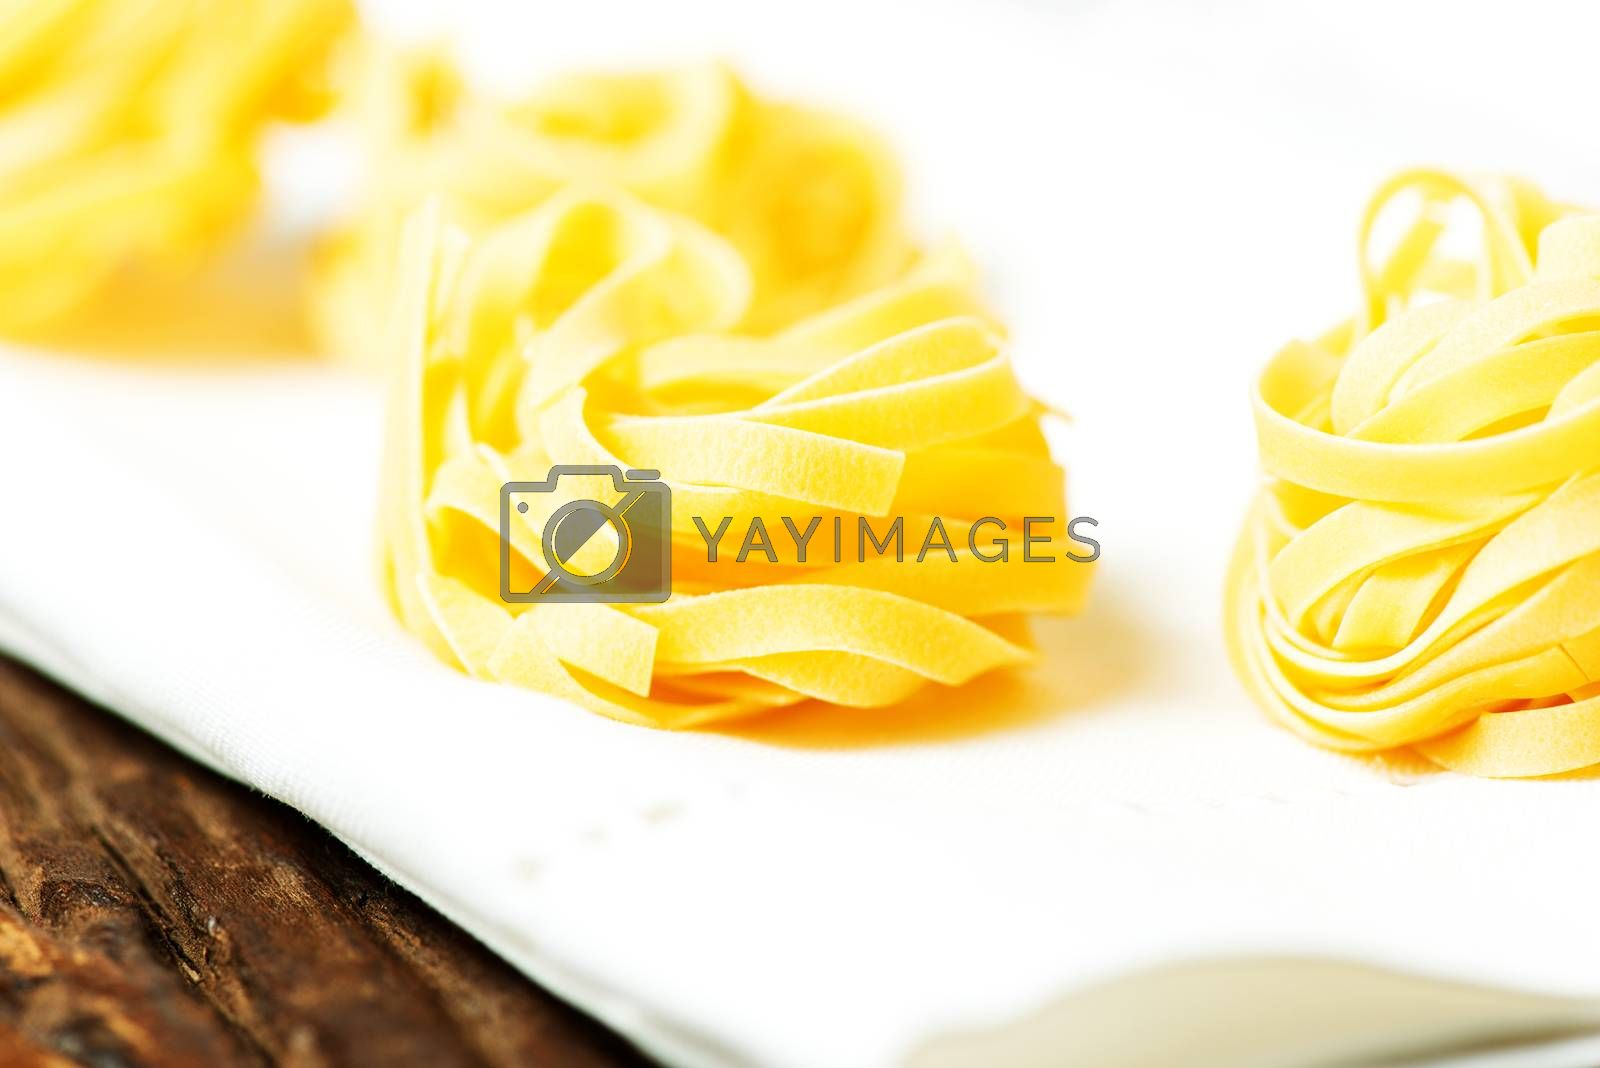 Royalty free image of Nests of dry pasta tagliatelle on tablecloth macro by Nanisimova